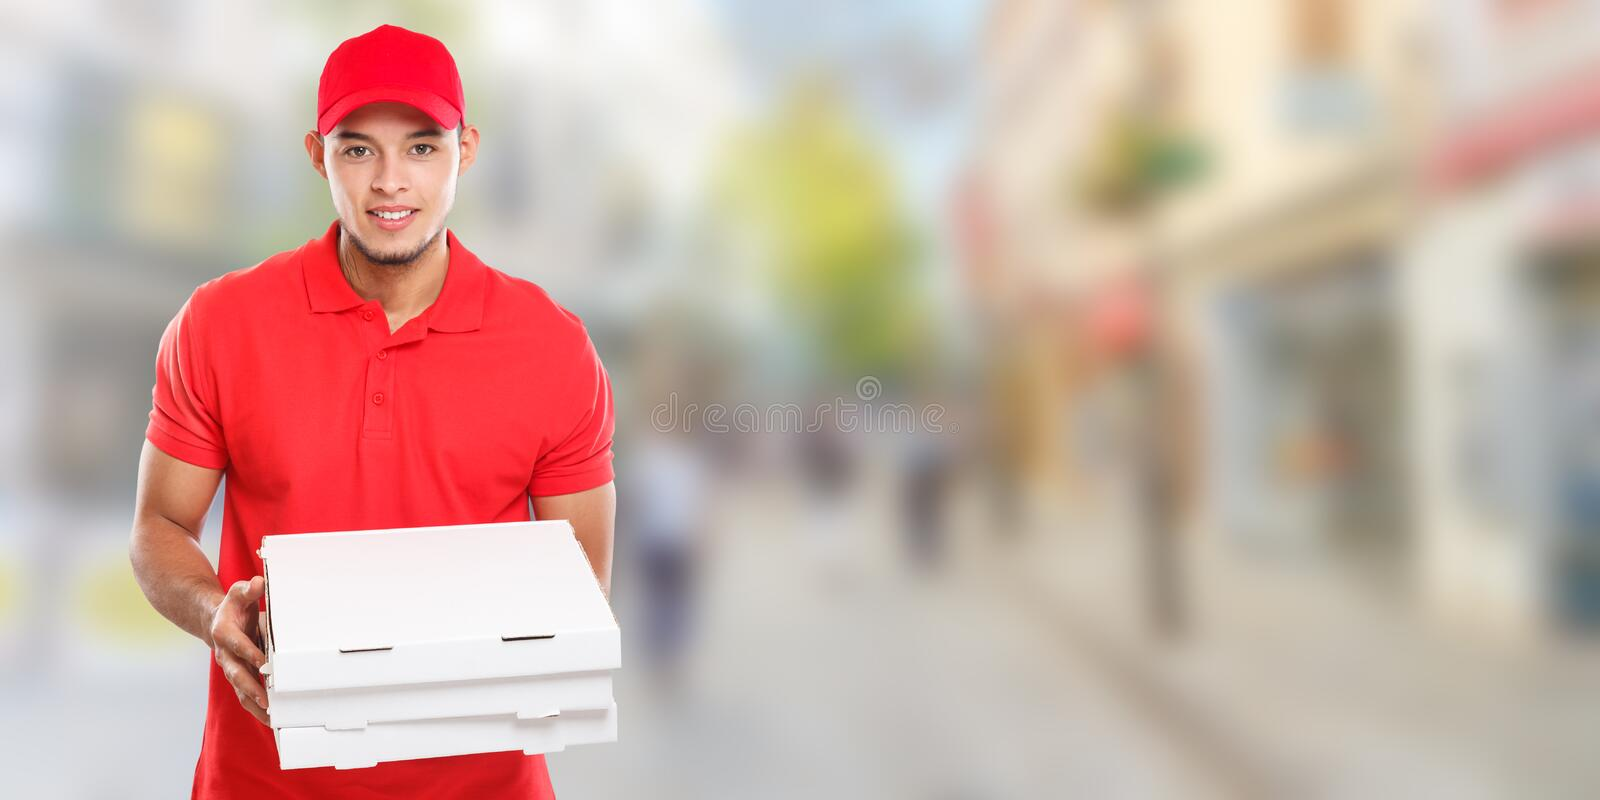 Pizza delivery latin man boy order delivering job deliver box young town banner copyspace copy space. City royalty free stock photo